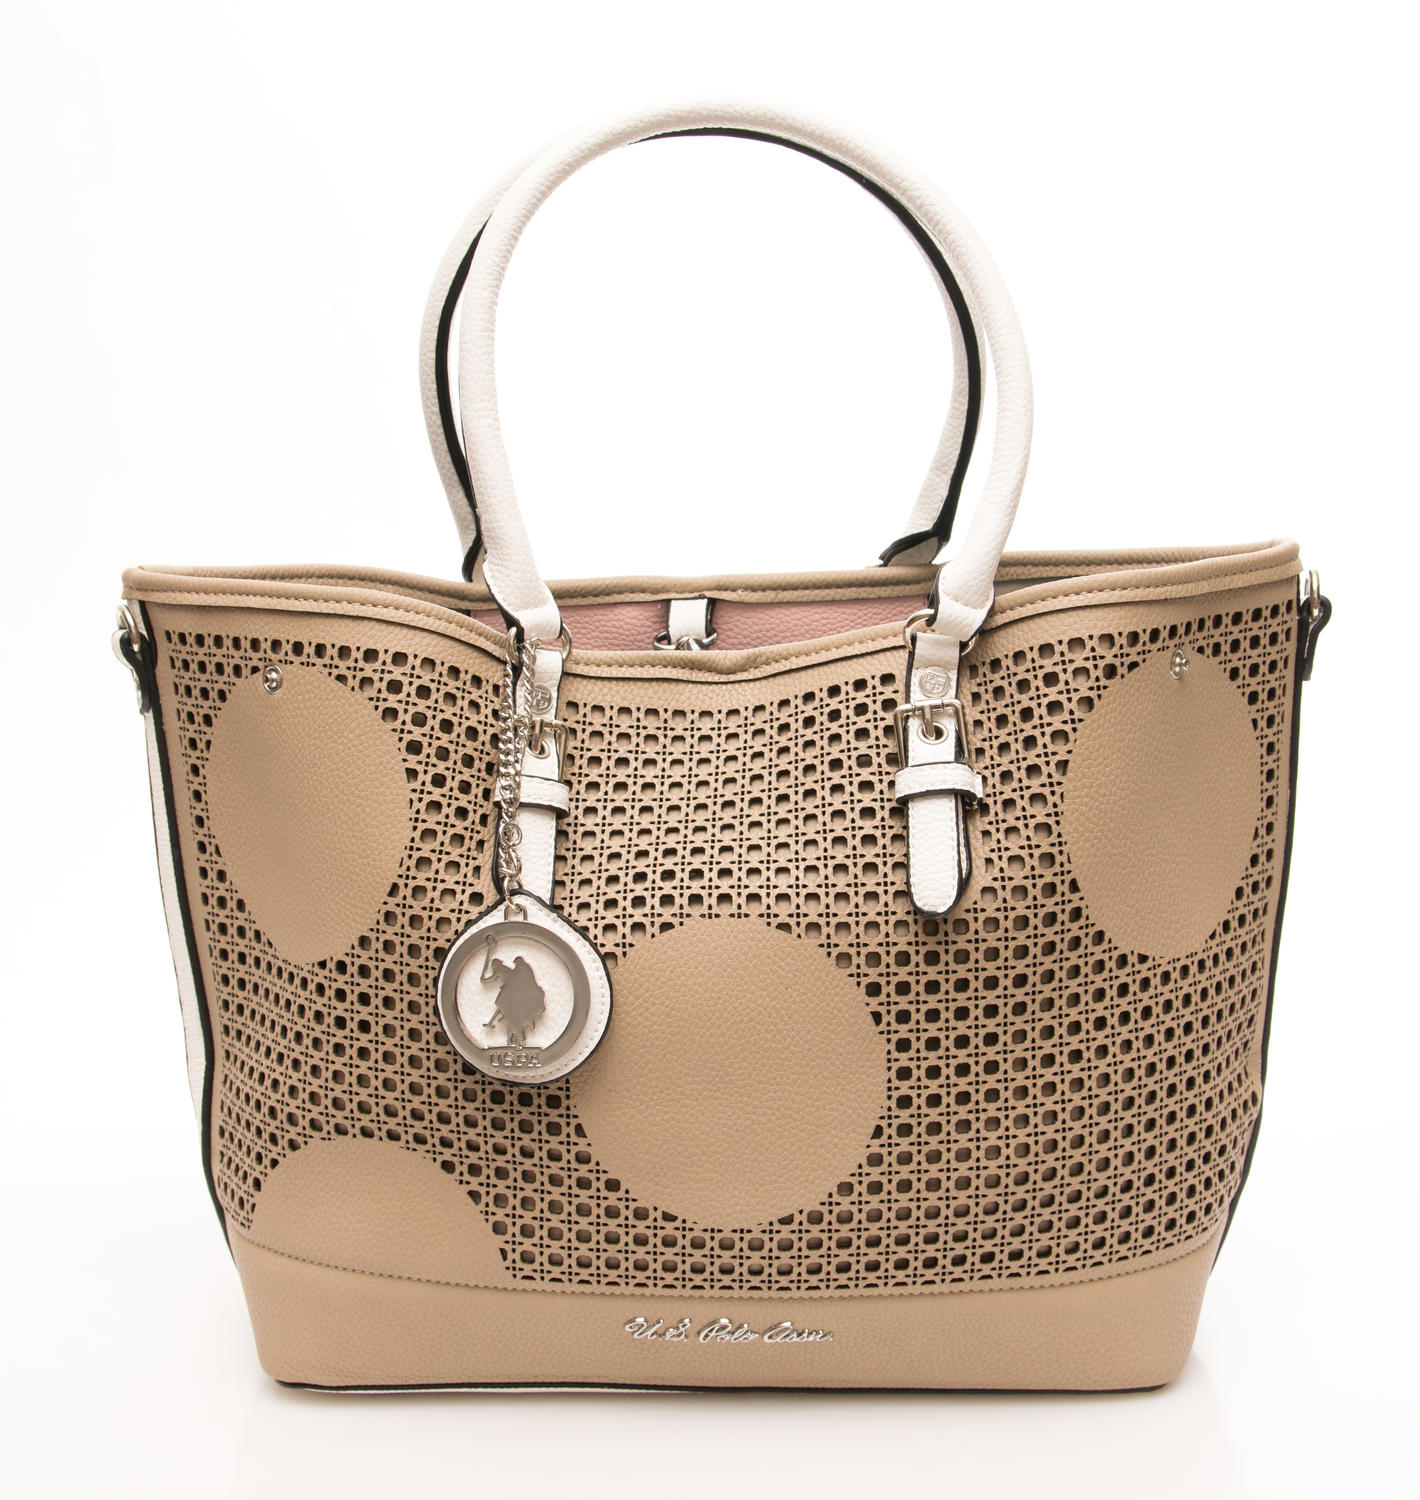 1812eb222f Us Polo Assn. Handbag  With Shoulder Strap - Shop Online At Best Prices!